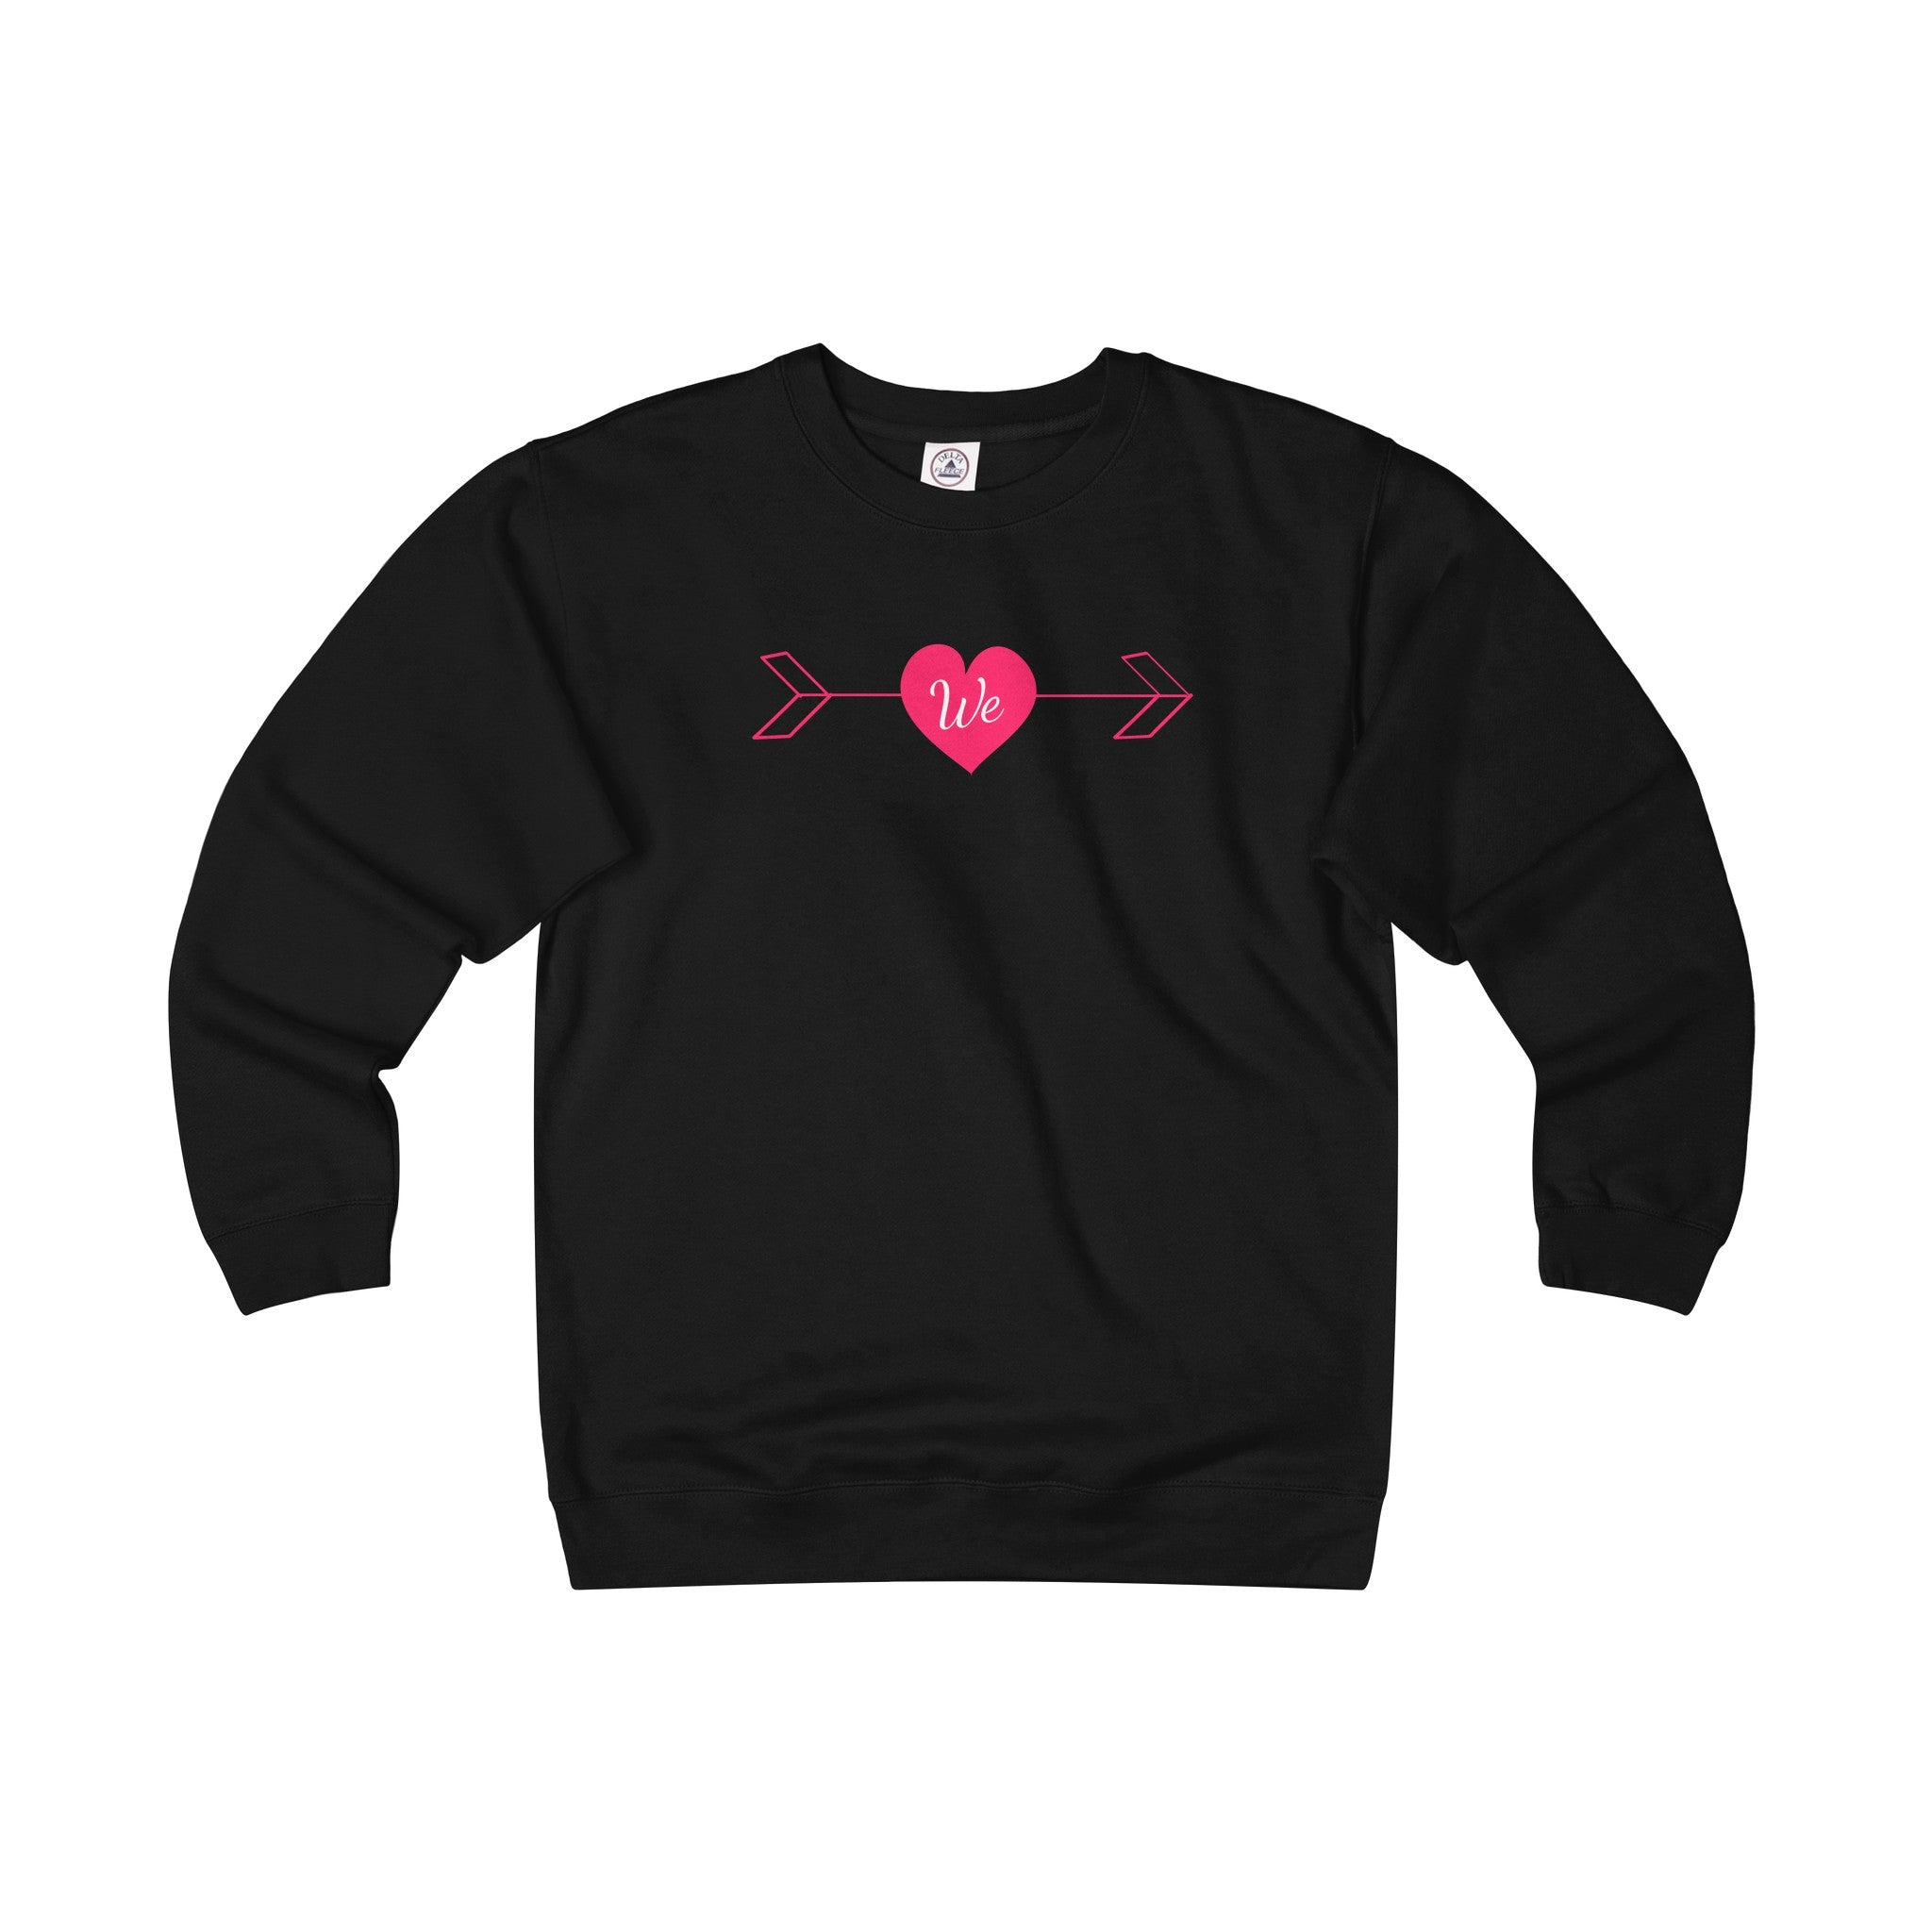 Unisex WE Sweatshirt - LanniC Fashion